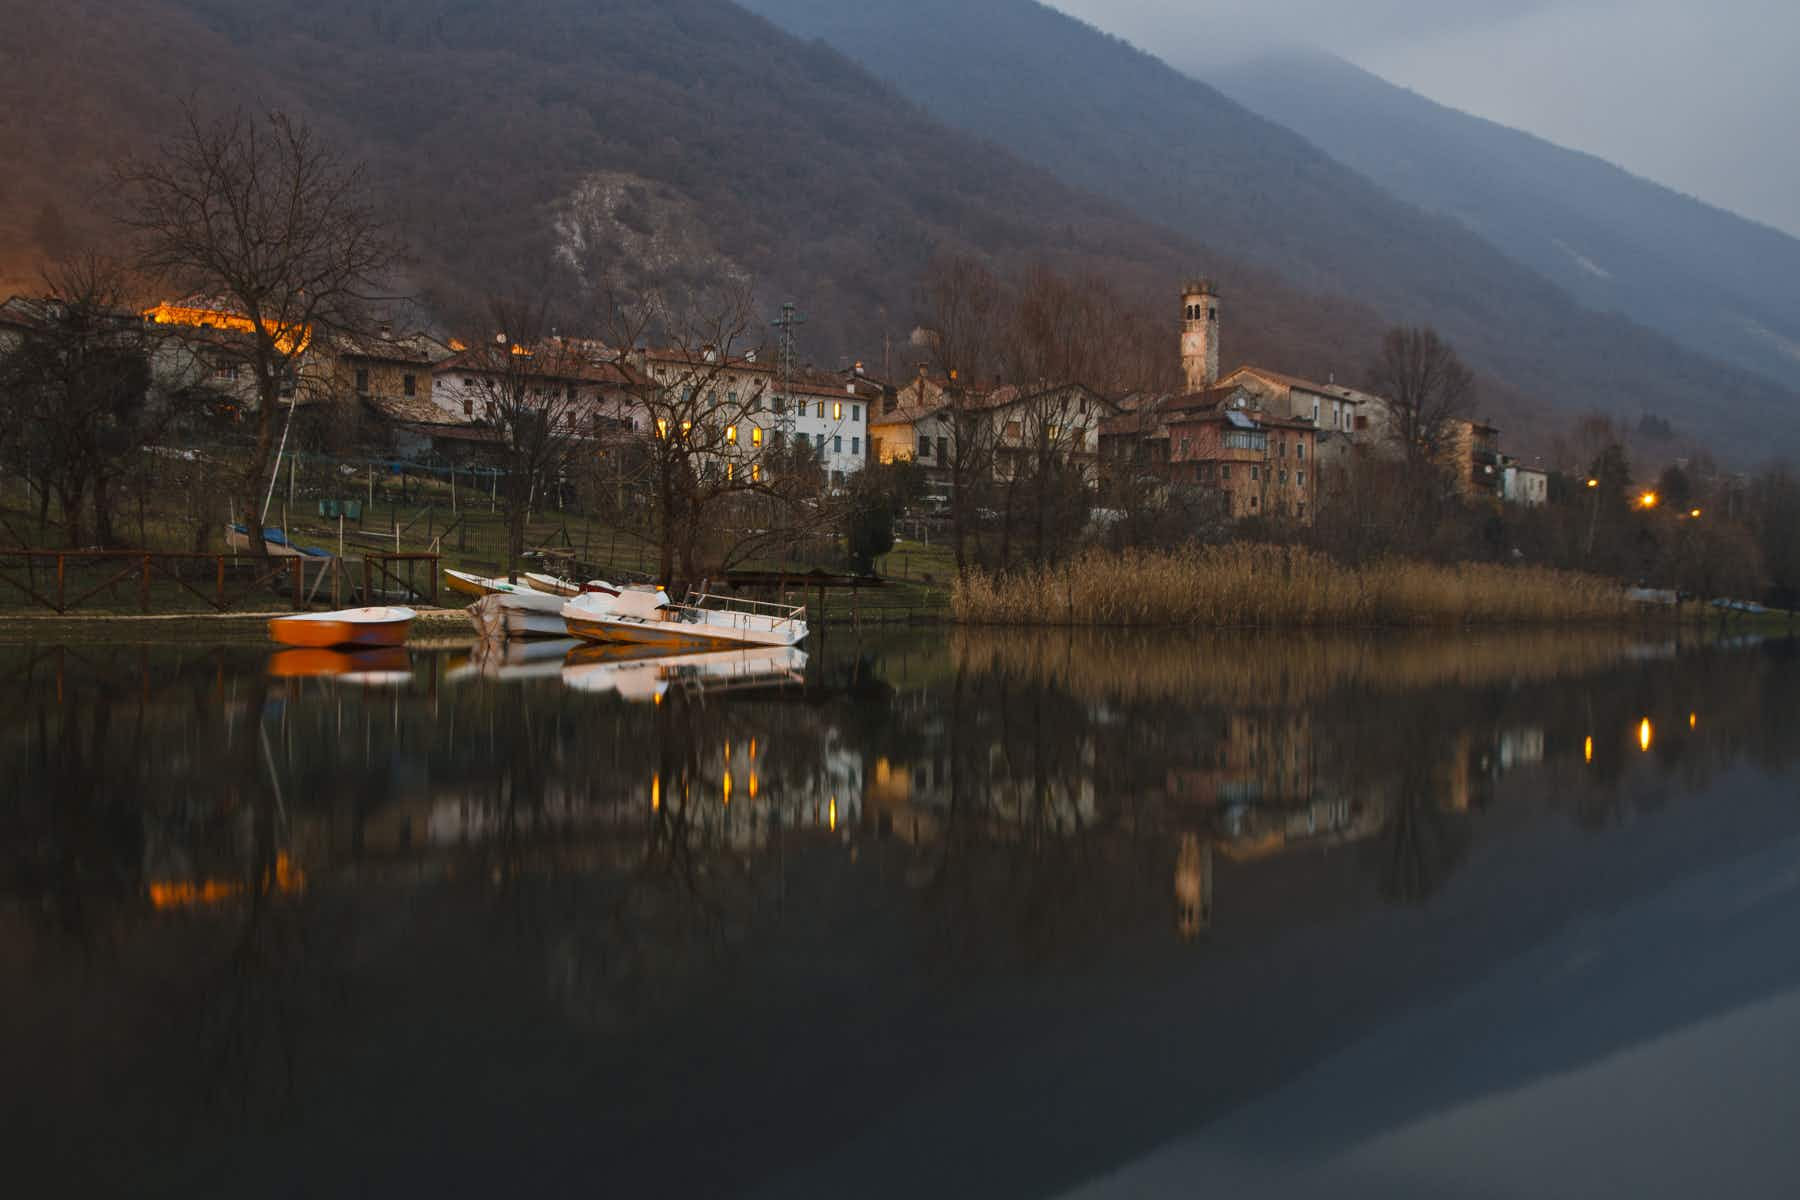 These two Italian lakes are now populated with virtual monsters and fantasy creatures